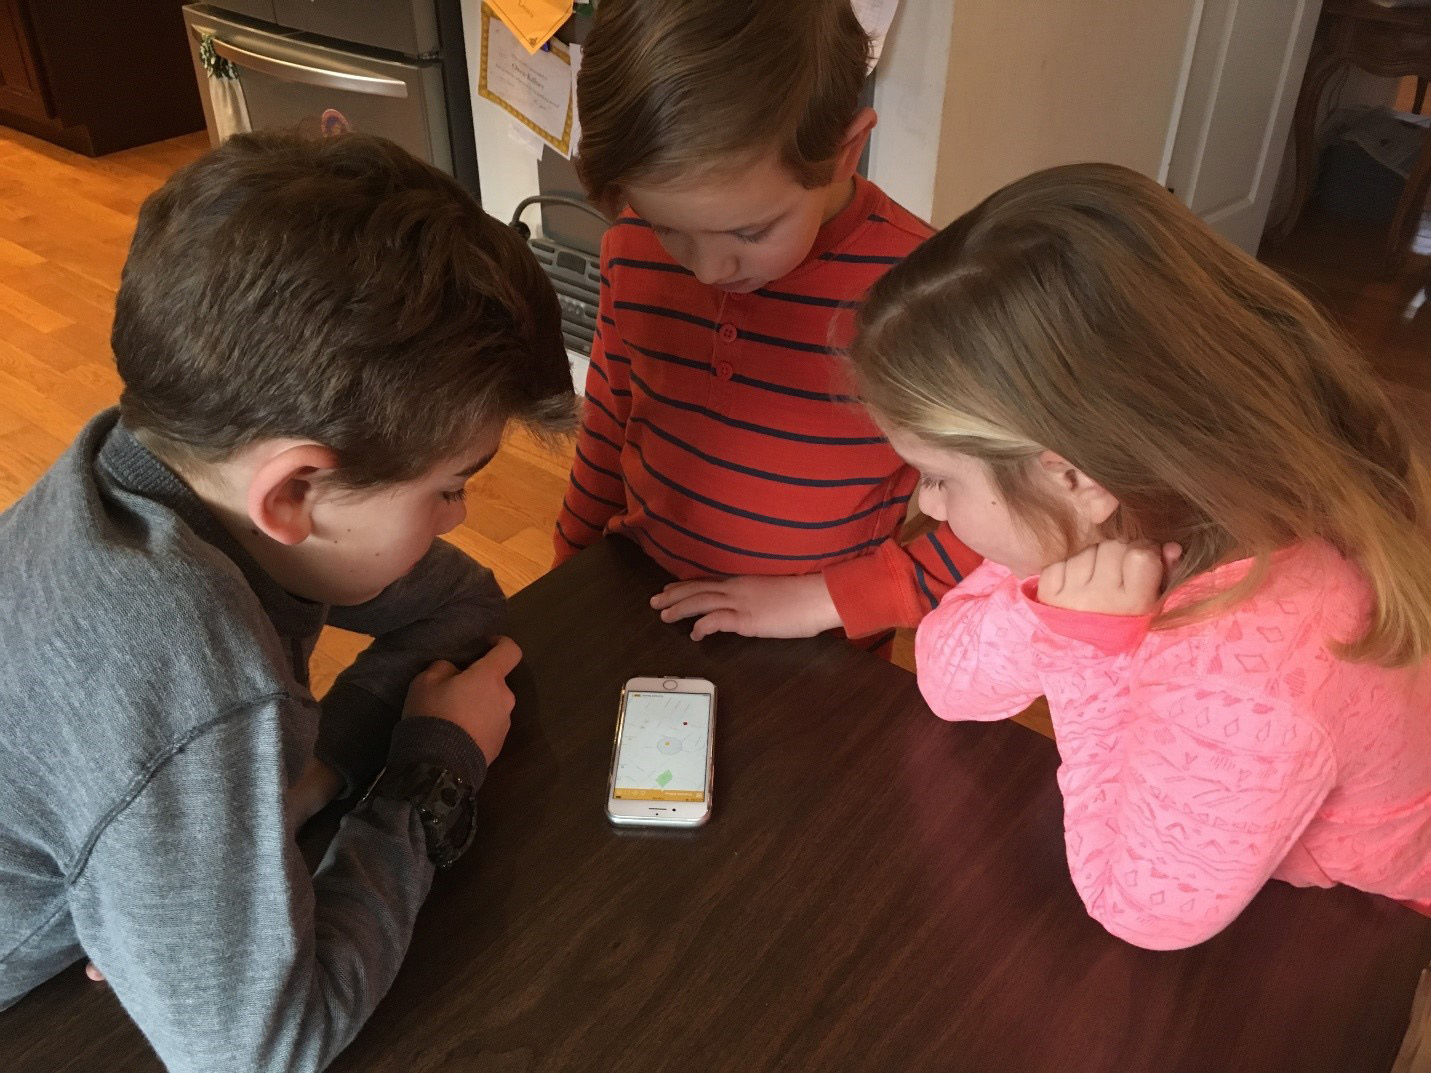 A Virginia family uses the free mobile app, Here Comes the Bus, to track the daily bus ride to and from school. The app has more than one million users and has accumulated 4.6. stars on the app store with more than 30,000 reviews.